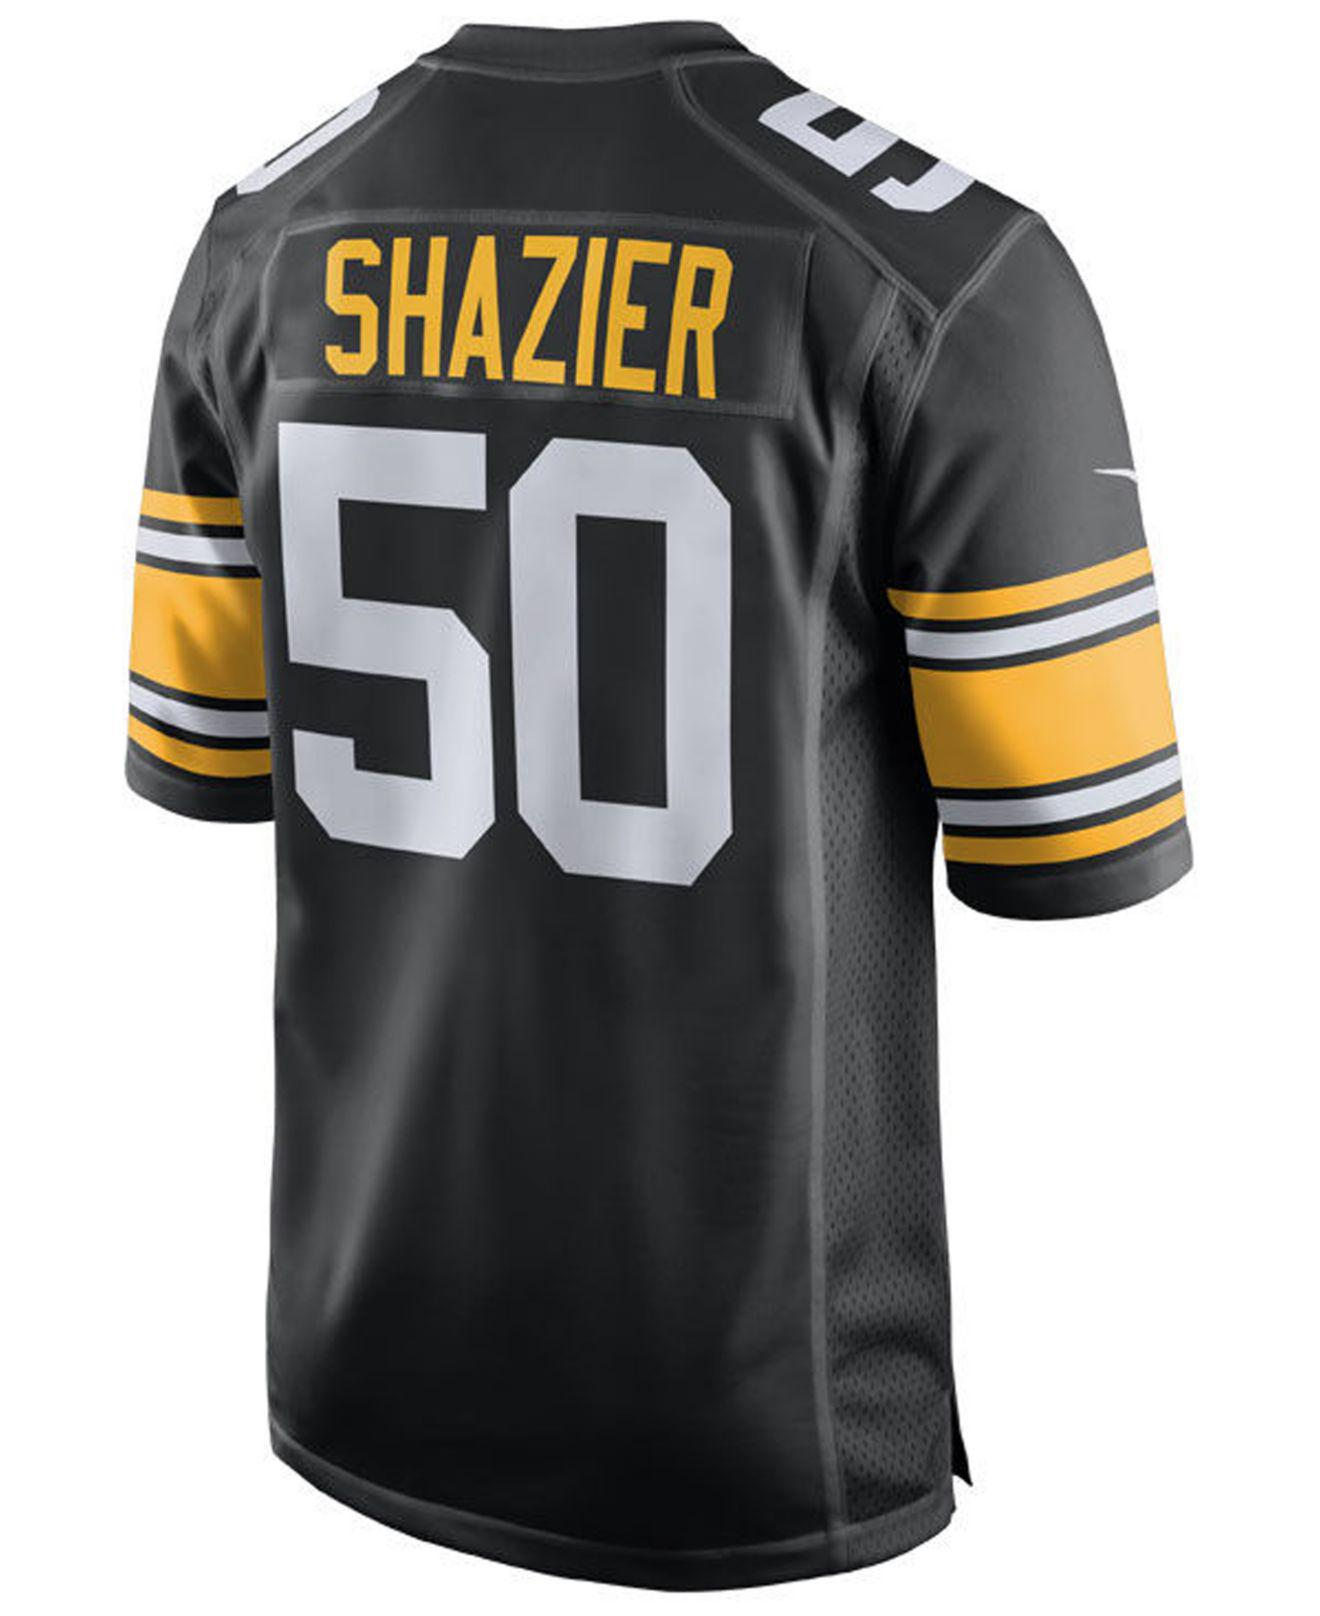 Lyst - Nike Ryan Shazier Pittsburgh Steelers Game Jersey in Black for Men a577c914a